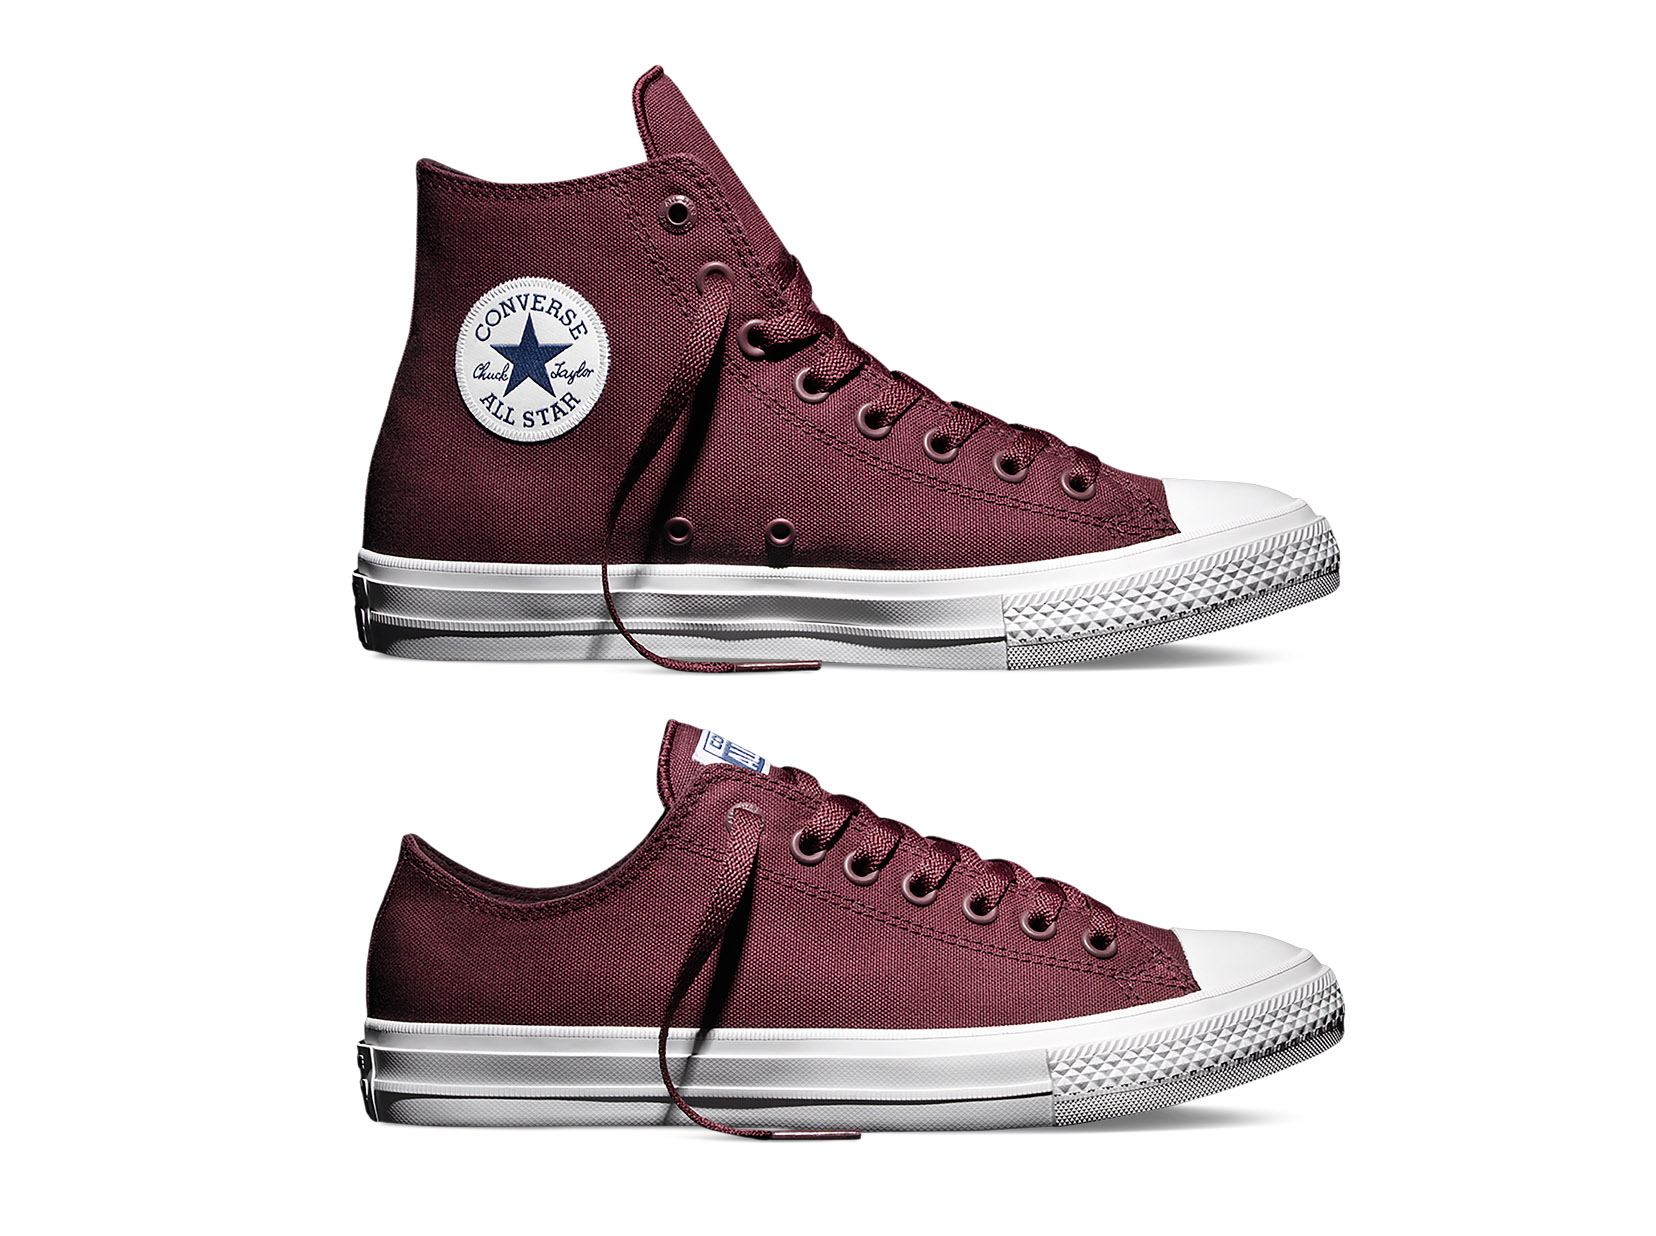 Converse Chuck Taylor All Star II 'Bordeaux' low and high